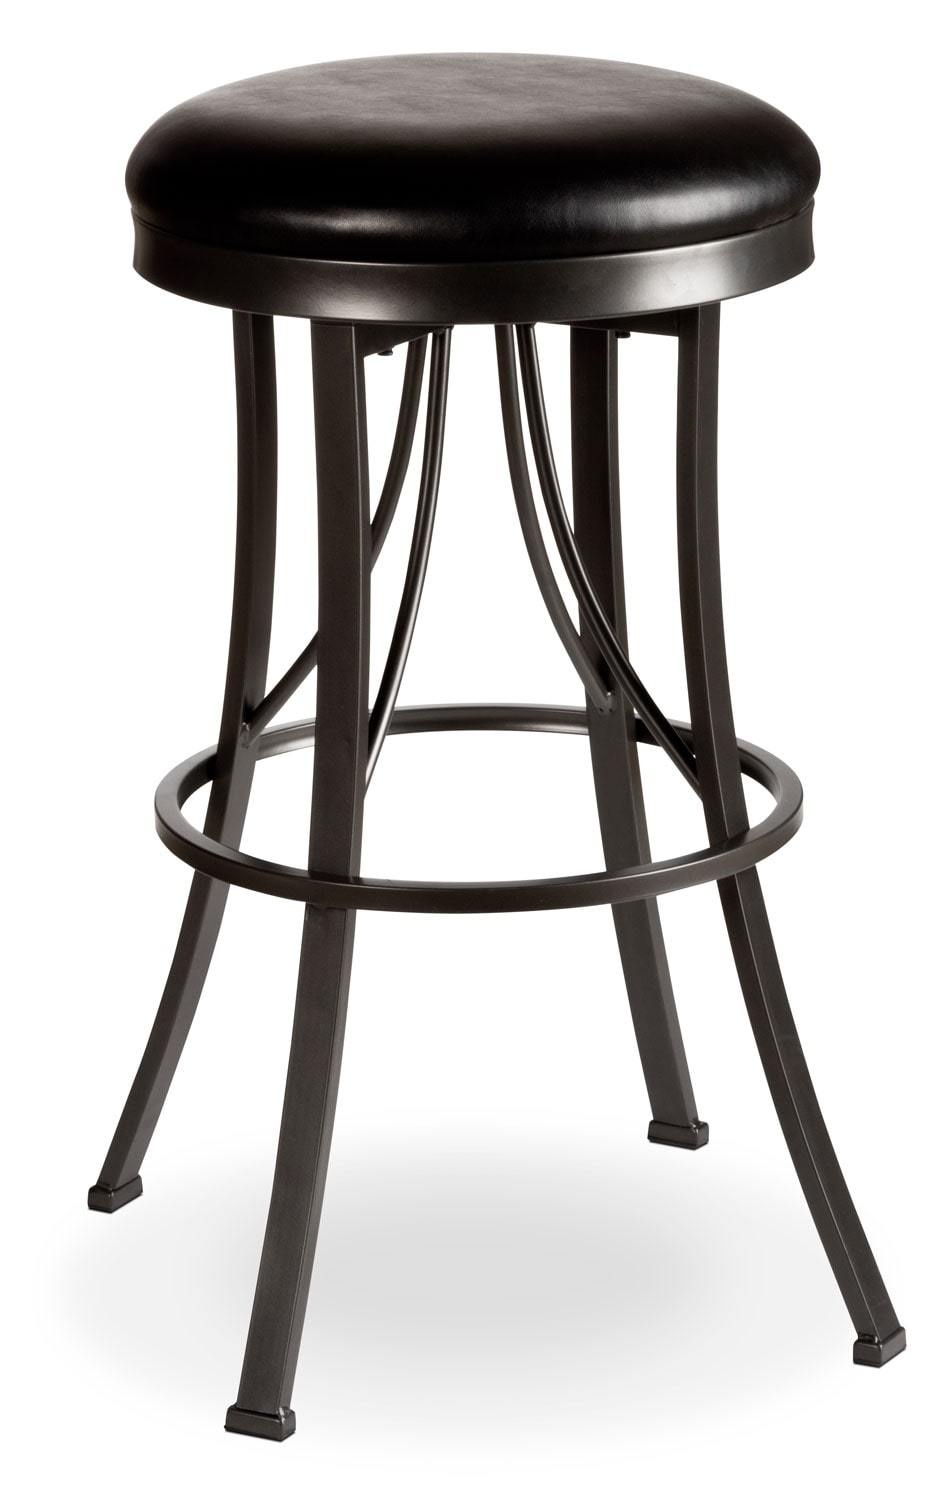 Dining Room Furniture - Ontario Backless Counter-Height Swivel Stool